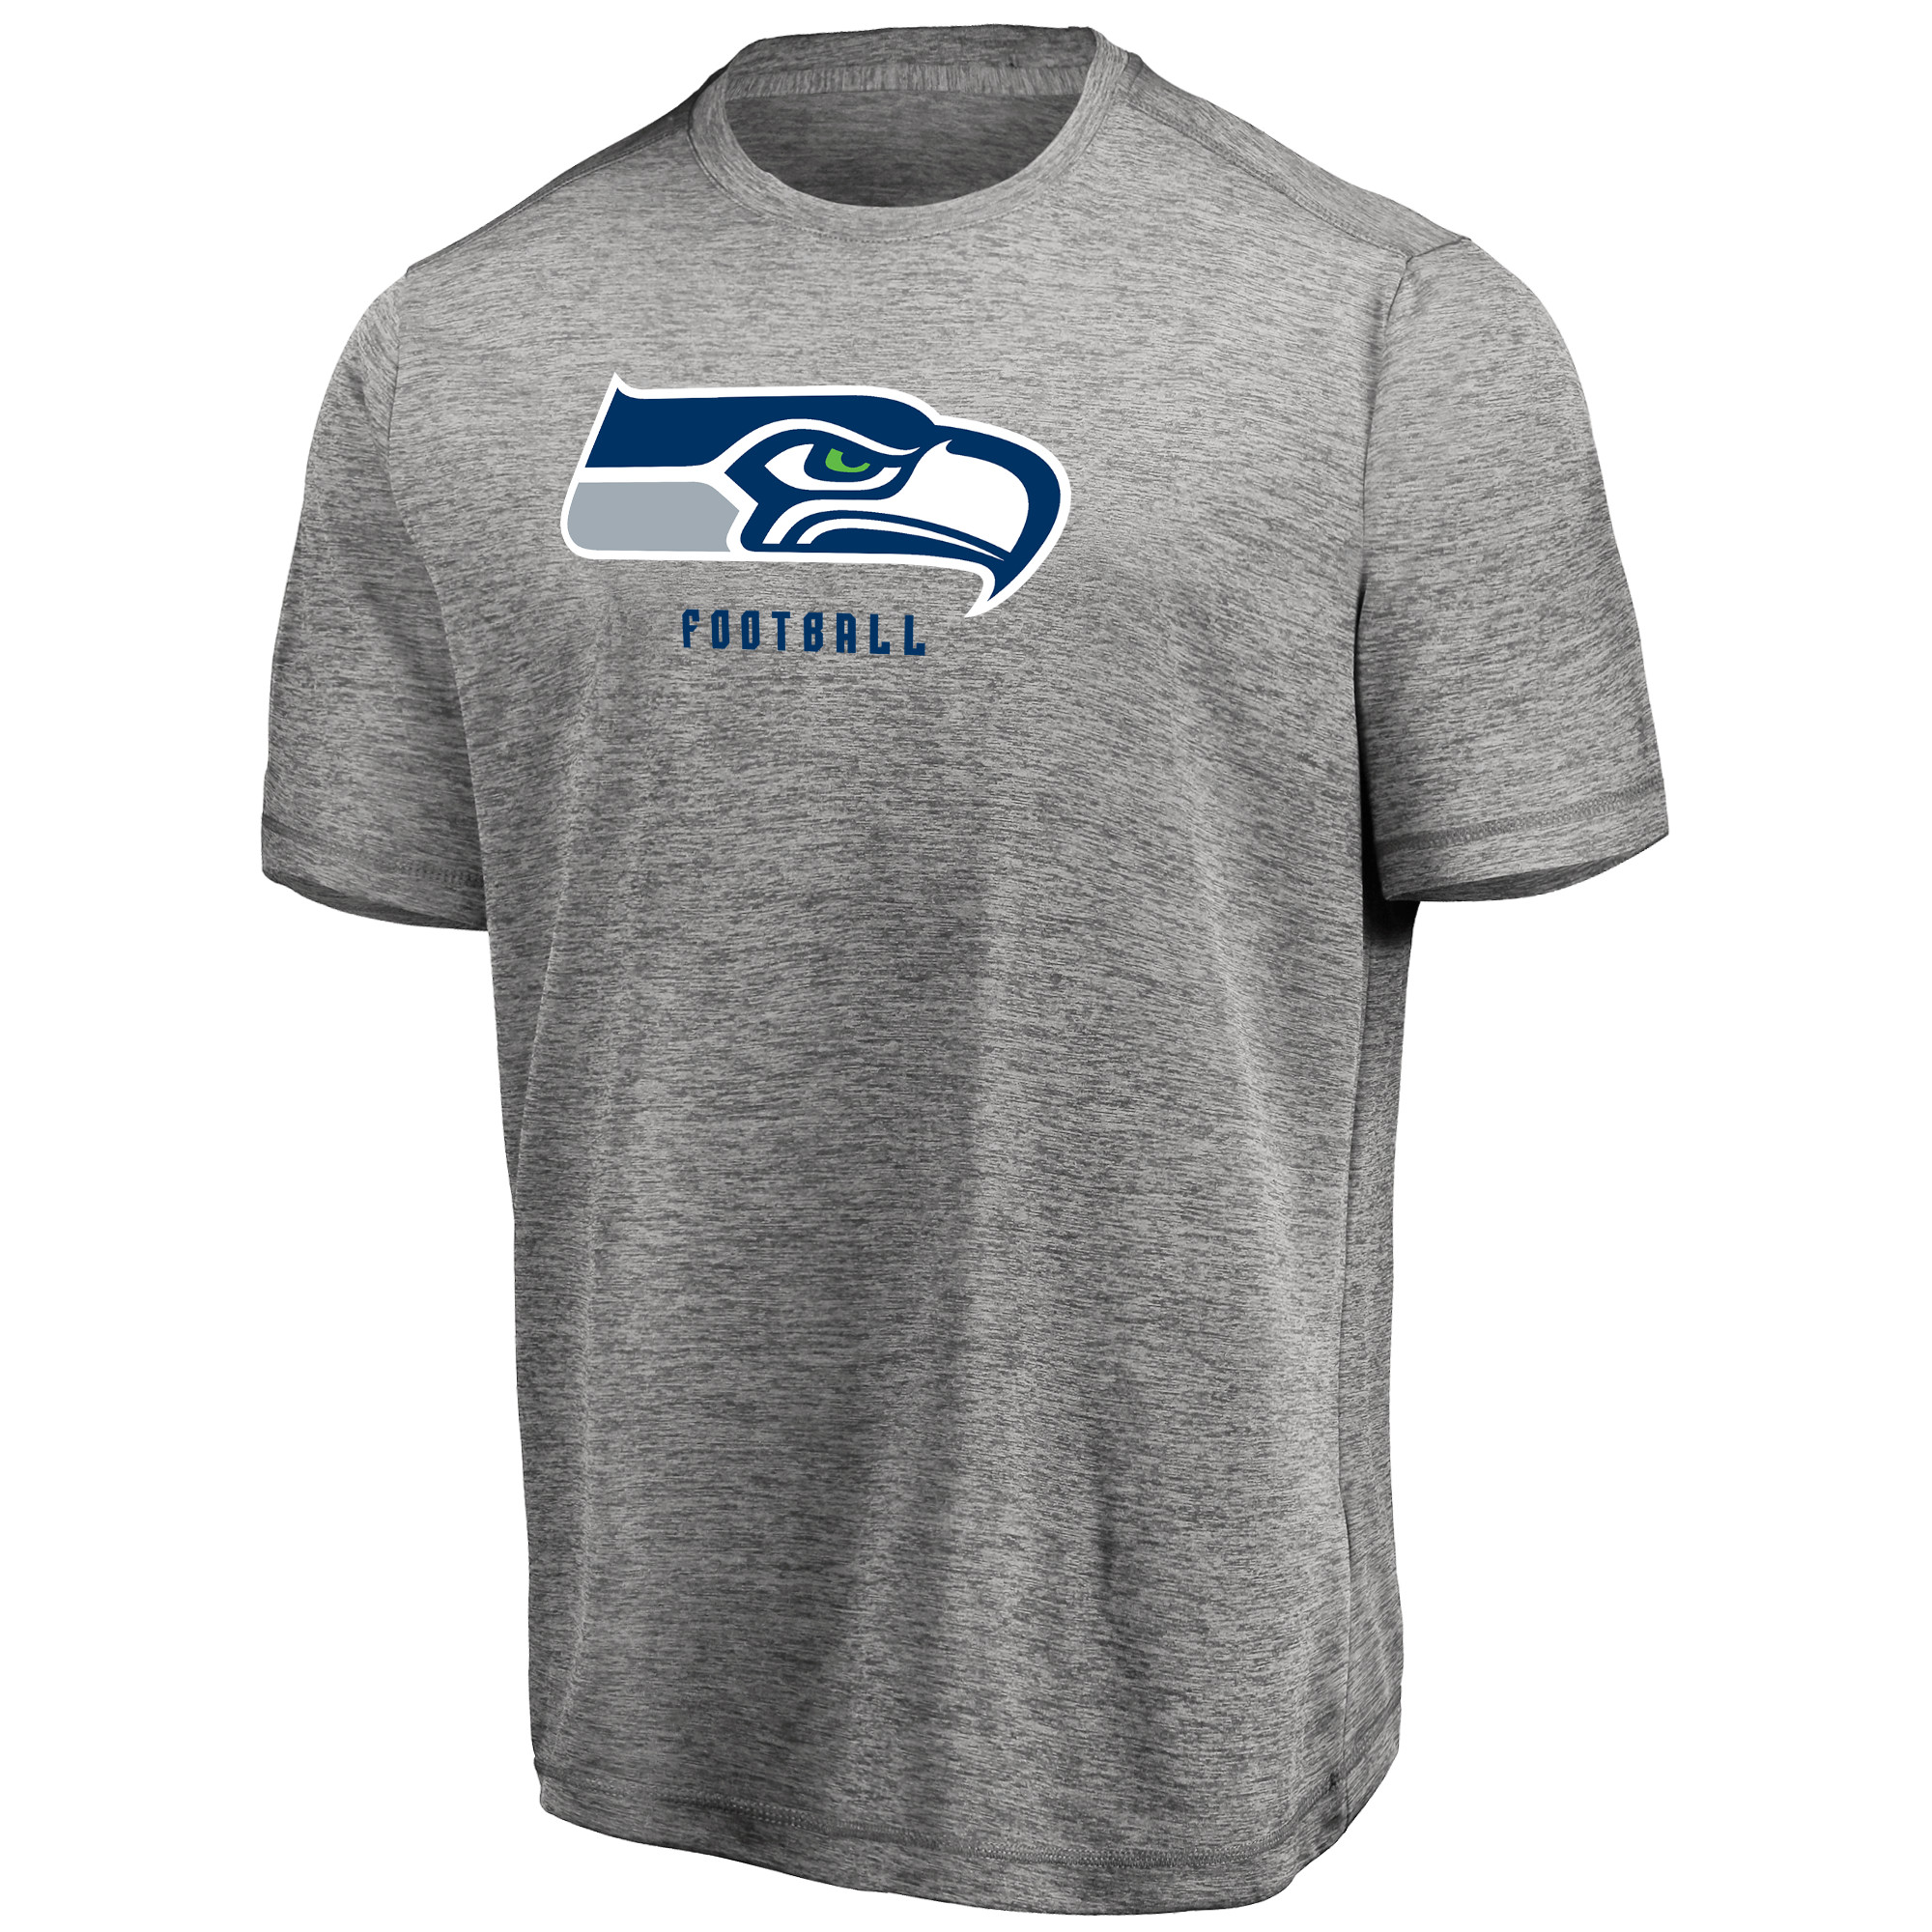 Men's Majestic Heathered Gray Seattle Seahawks Proven Winner Synthetic TX3 Cool Fabric T-Shirt